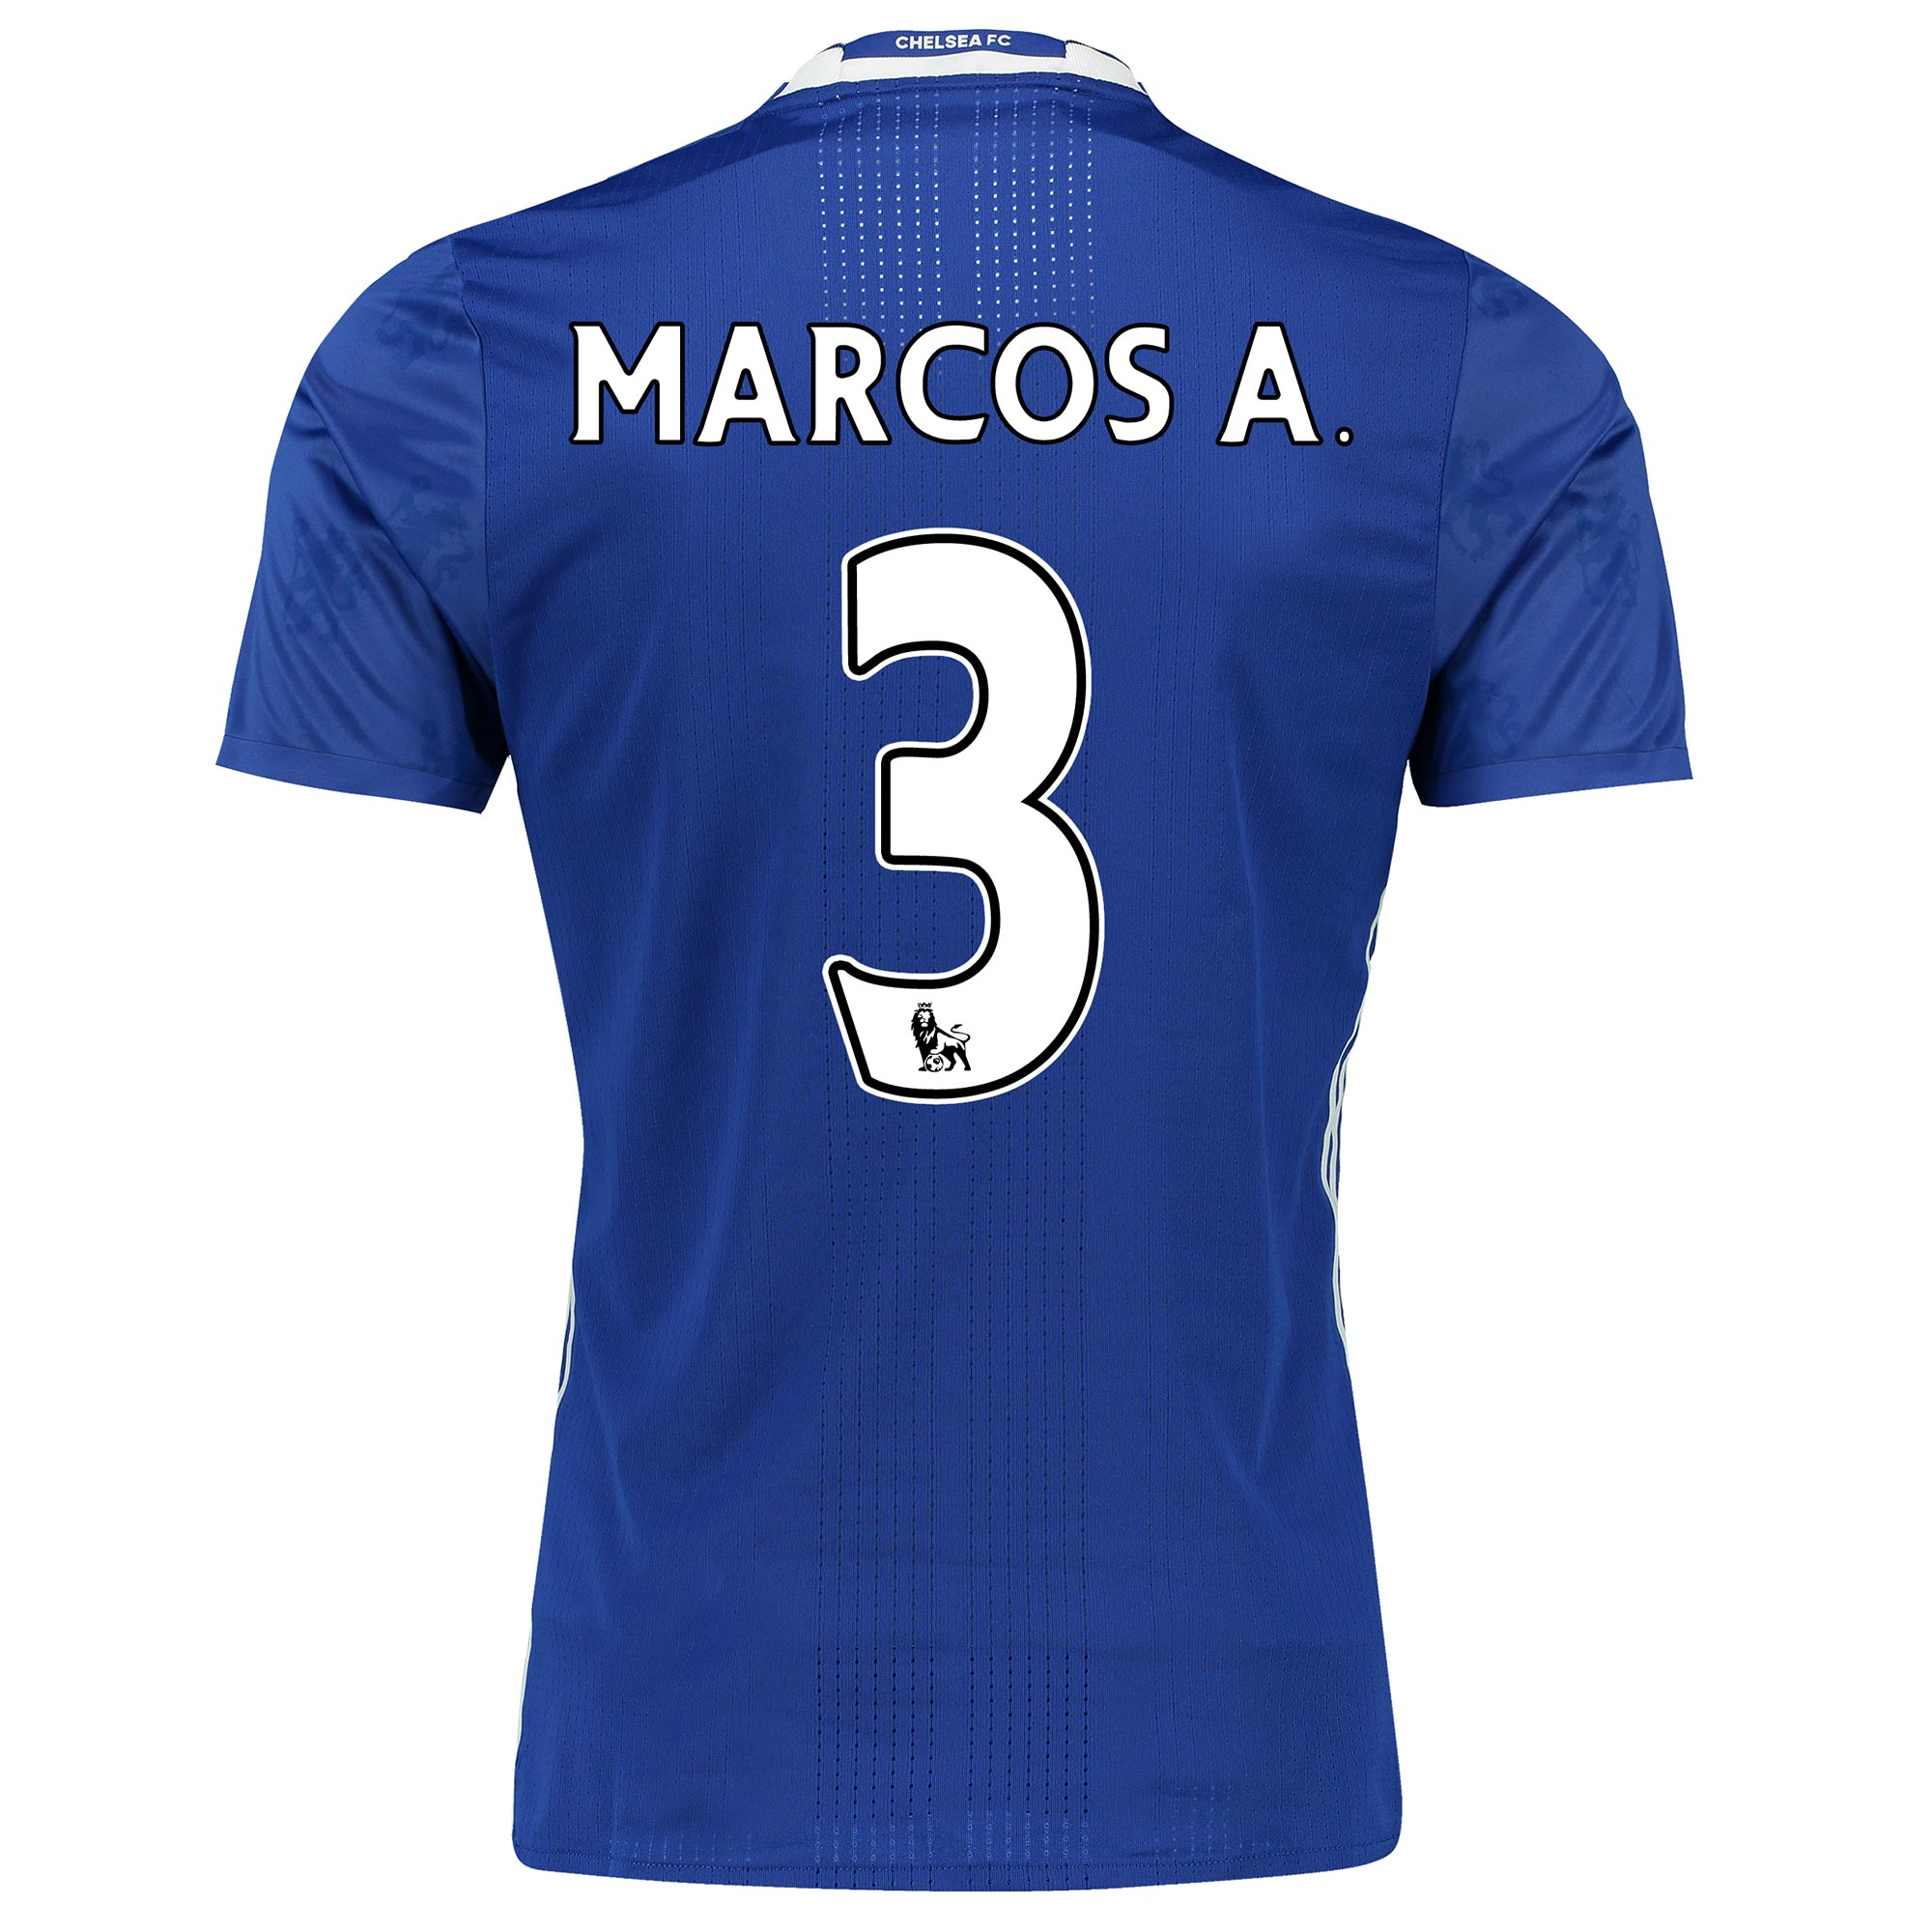 Shop Marcos A. Printed Shirts